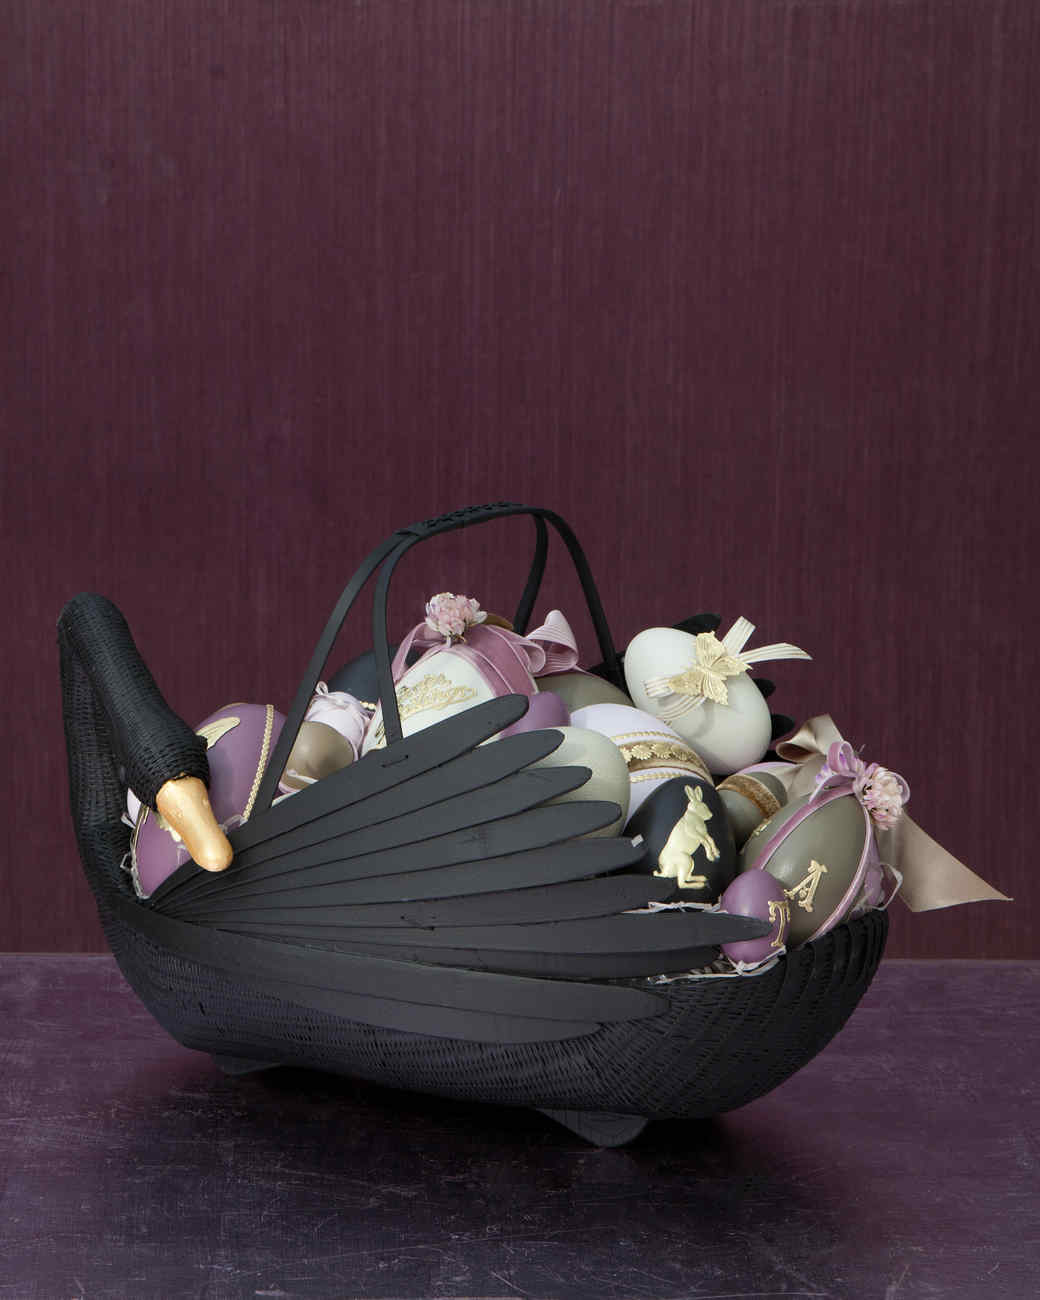 black-swan-basket-3196-d111156.jpg